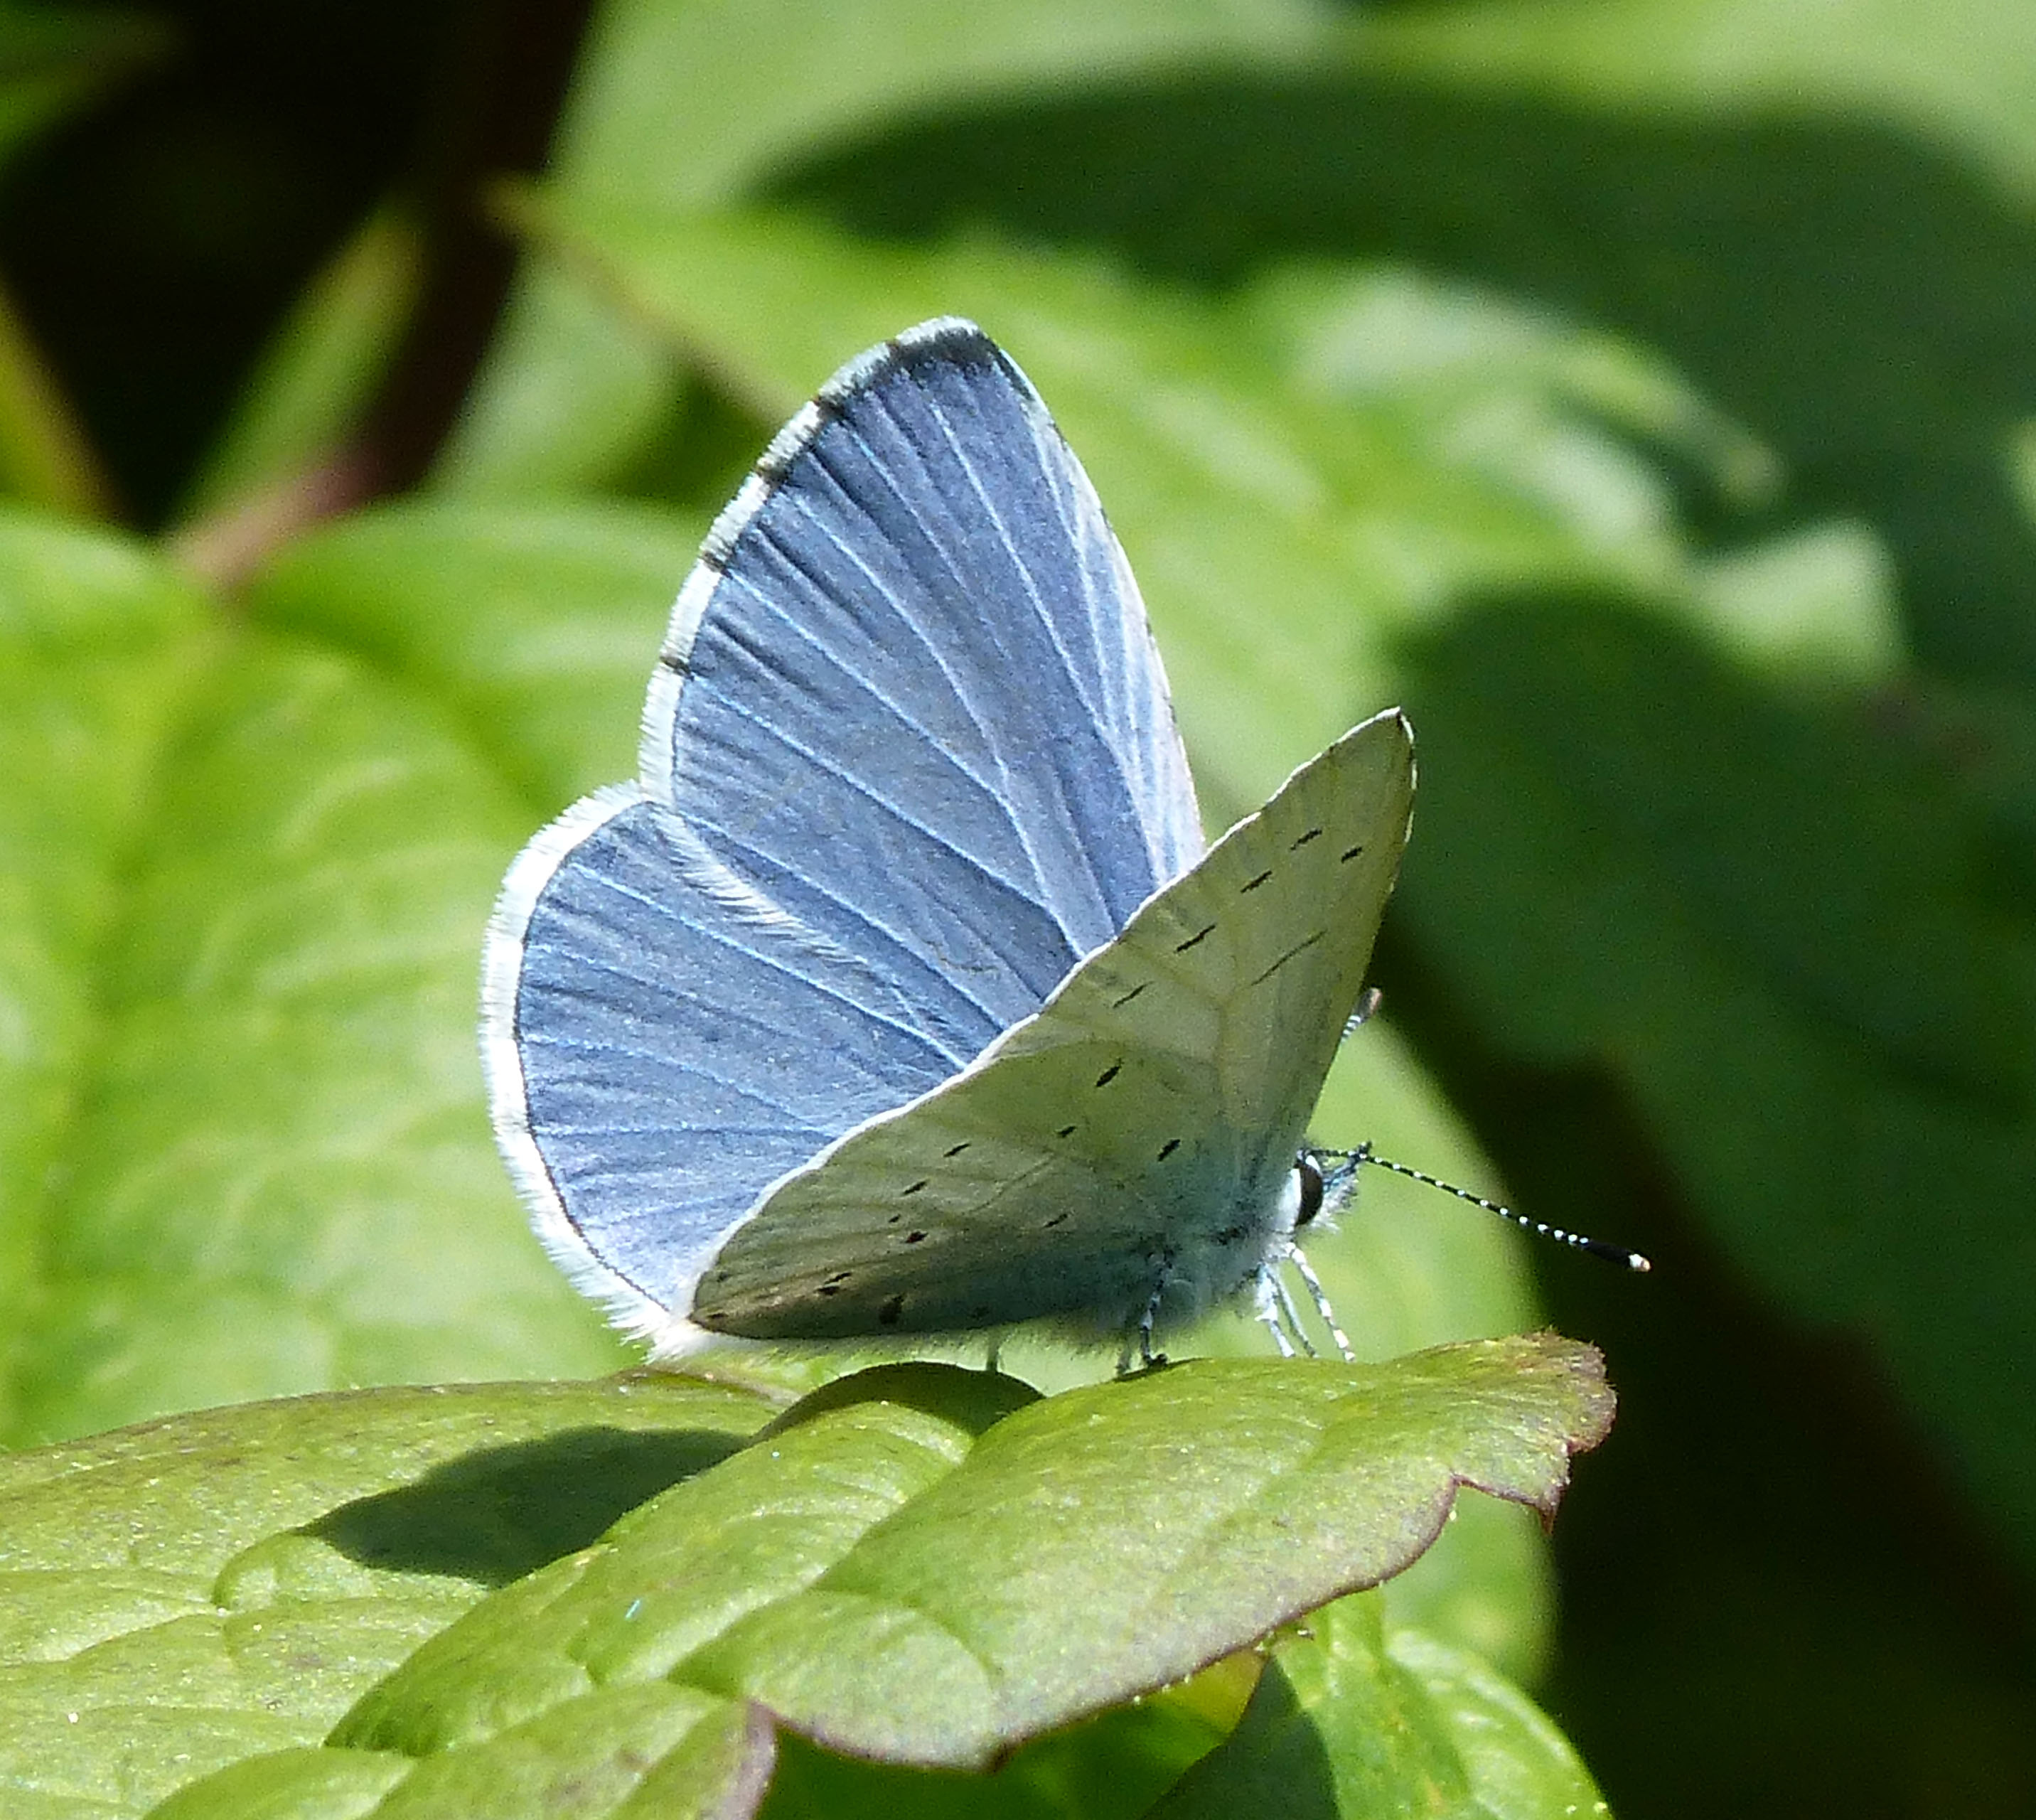 Holly blue butterfly resting on a leaf